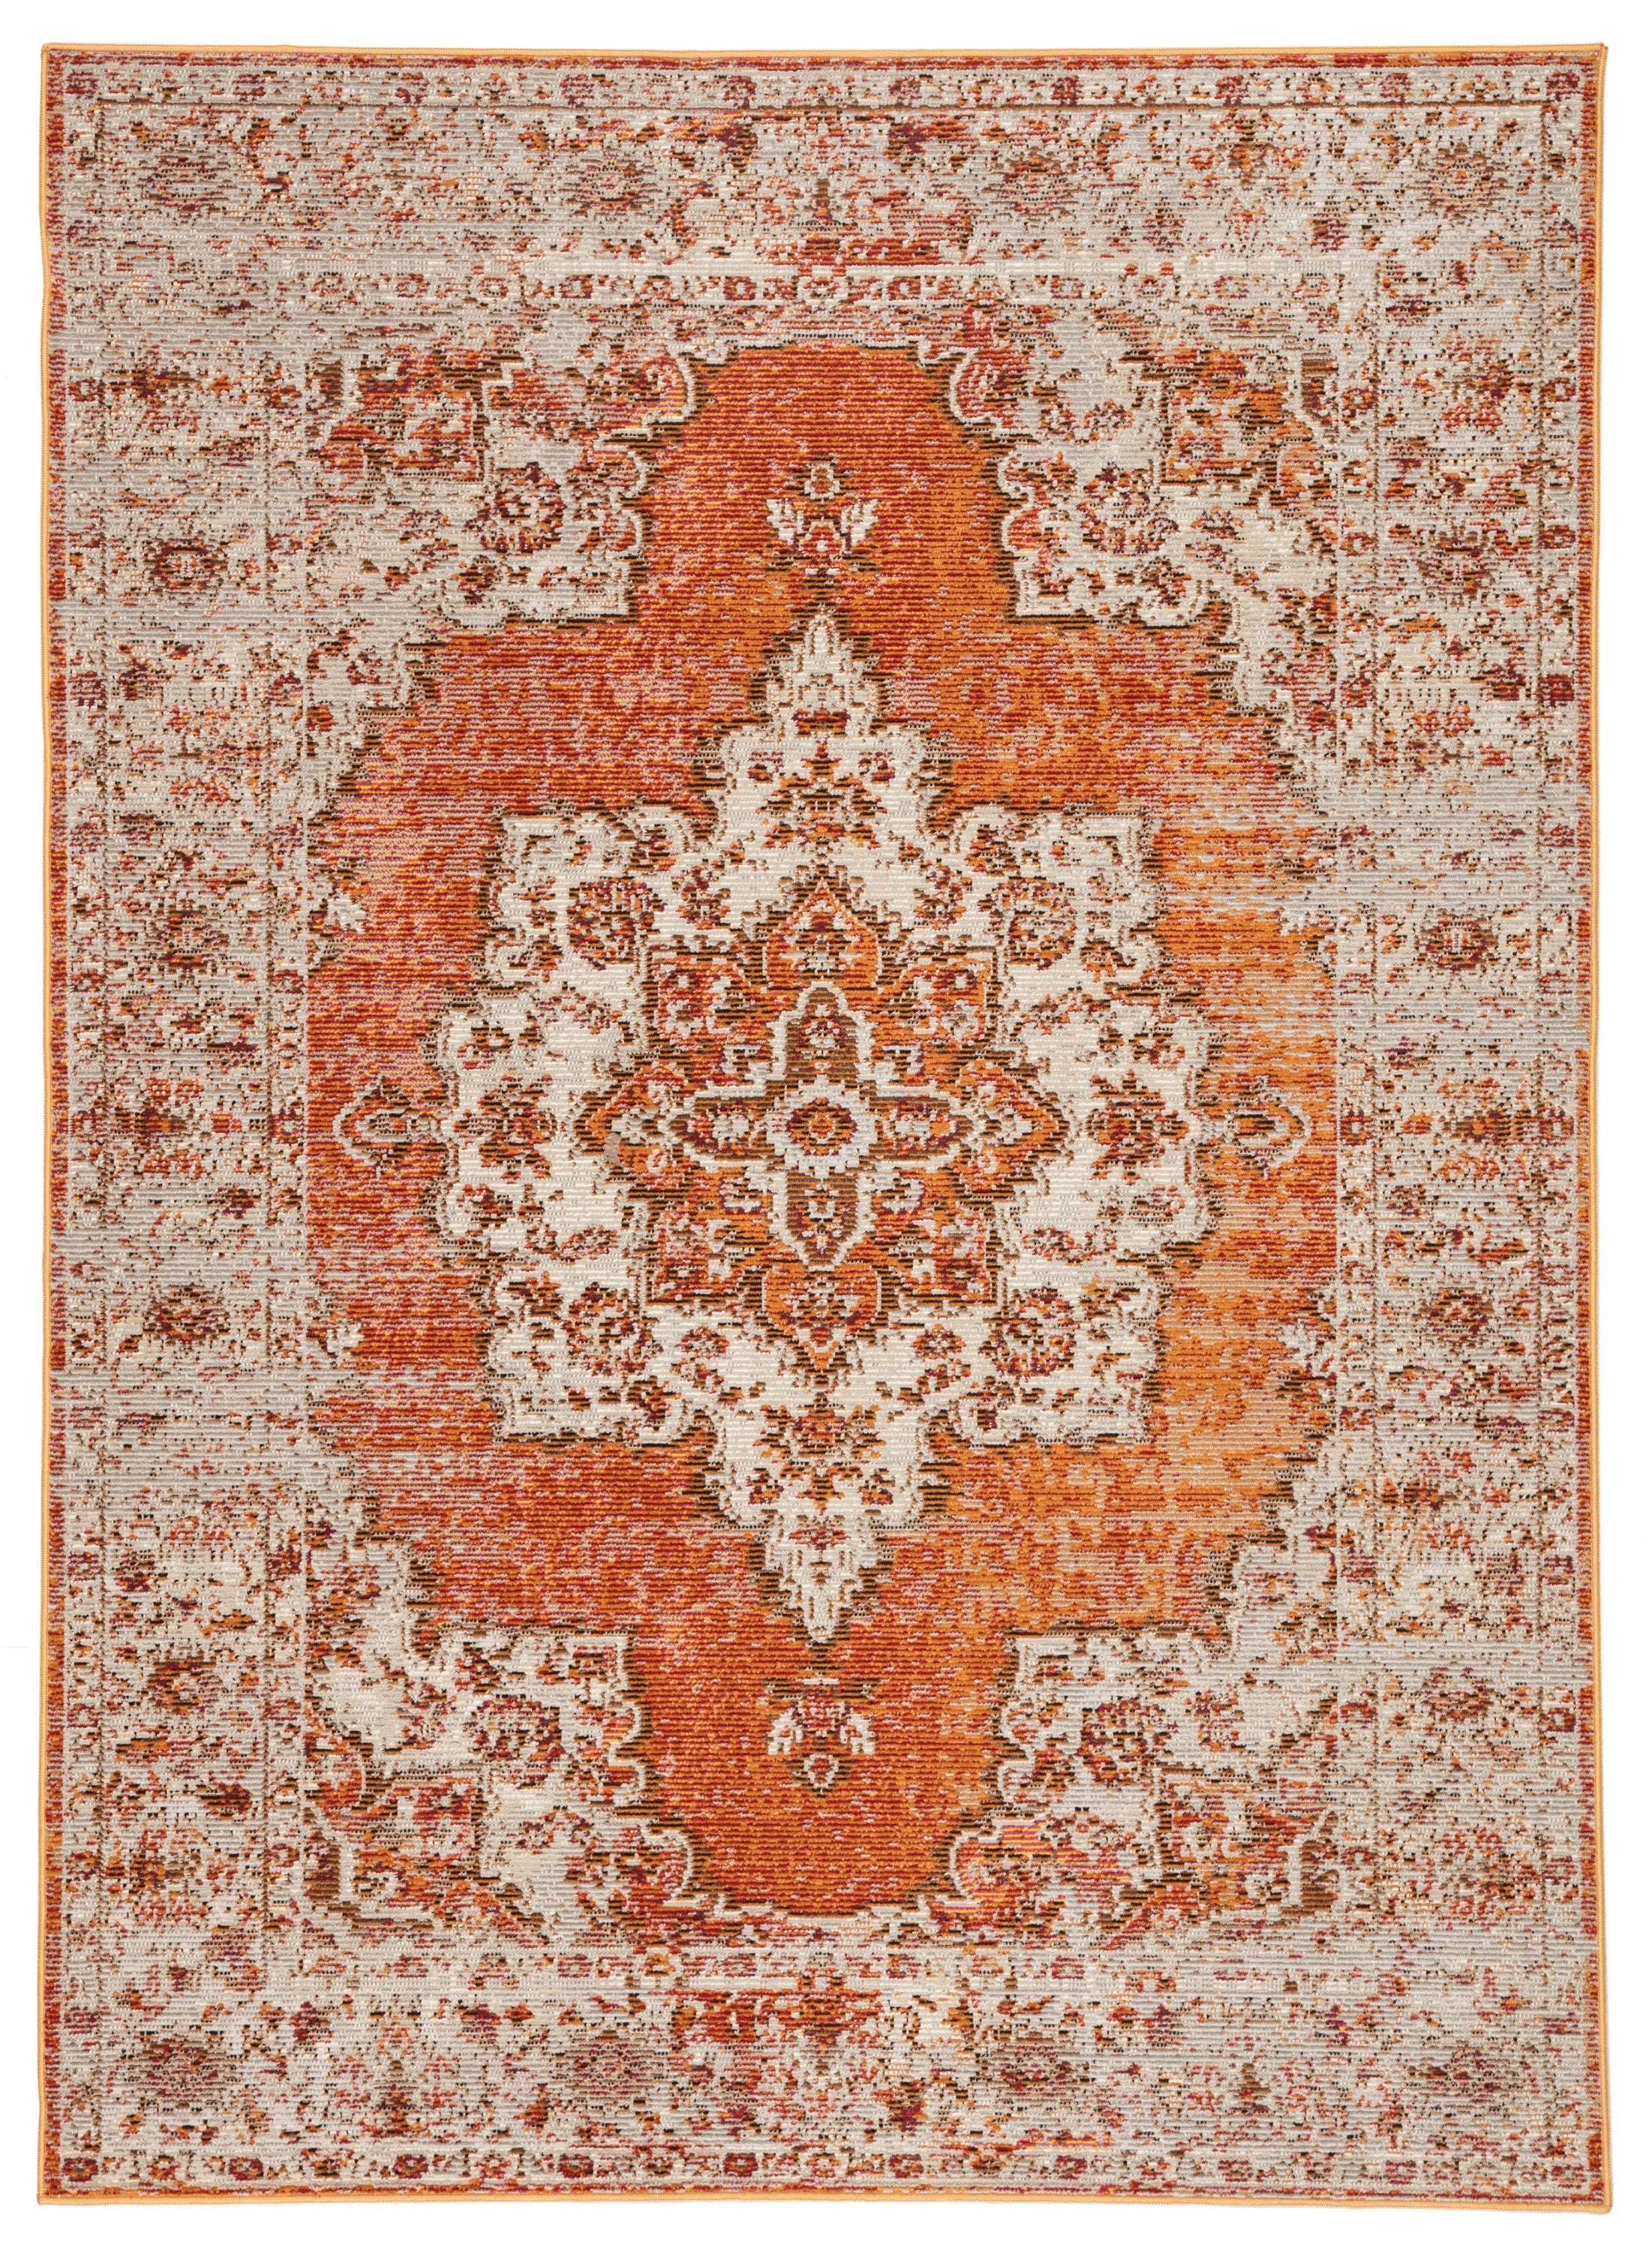 Rectangle 53x76 Orange Medallion Machine Made Synthetics Boho/bohemian recommended for Kitchen, Bedroom, Bathroom, Dining Room, Office, Hallway, Living Room